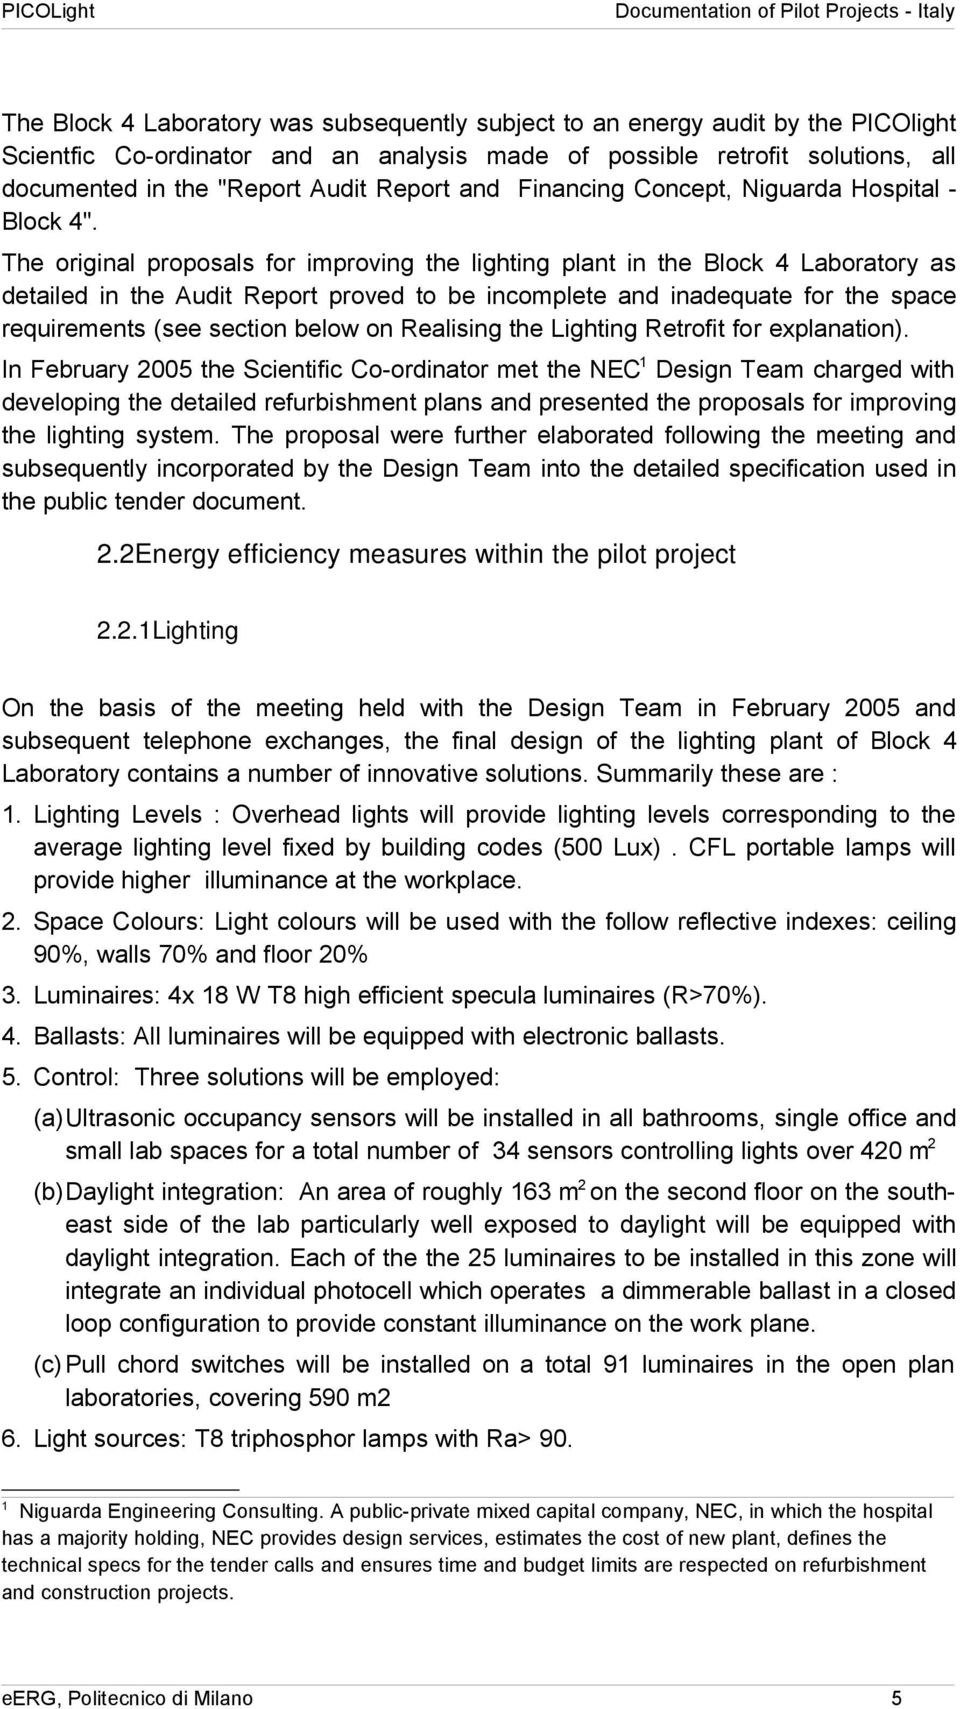 The original proposals for improving the lighting plant in the Block 4 Laboratory as detailed in the Audit Report proved to be incomplete and inadequate for the space requirements (see section below